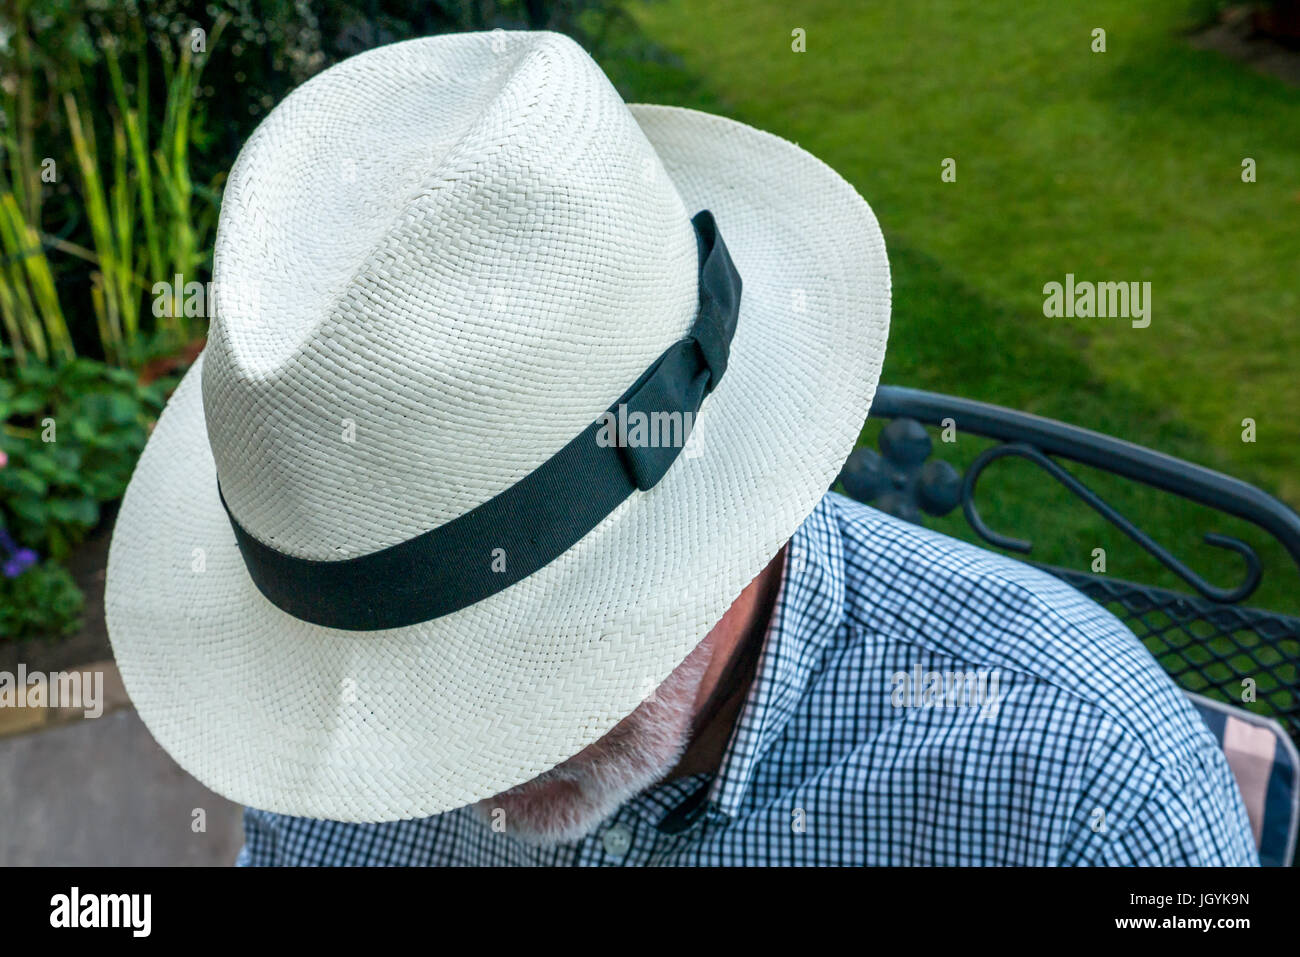 fd483bce748878 Close up of older man with white beard sitting outside in garden wearing a  Panama hat